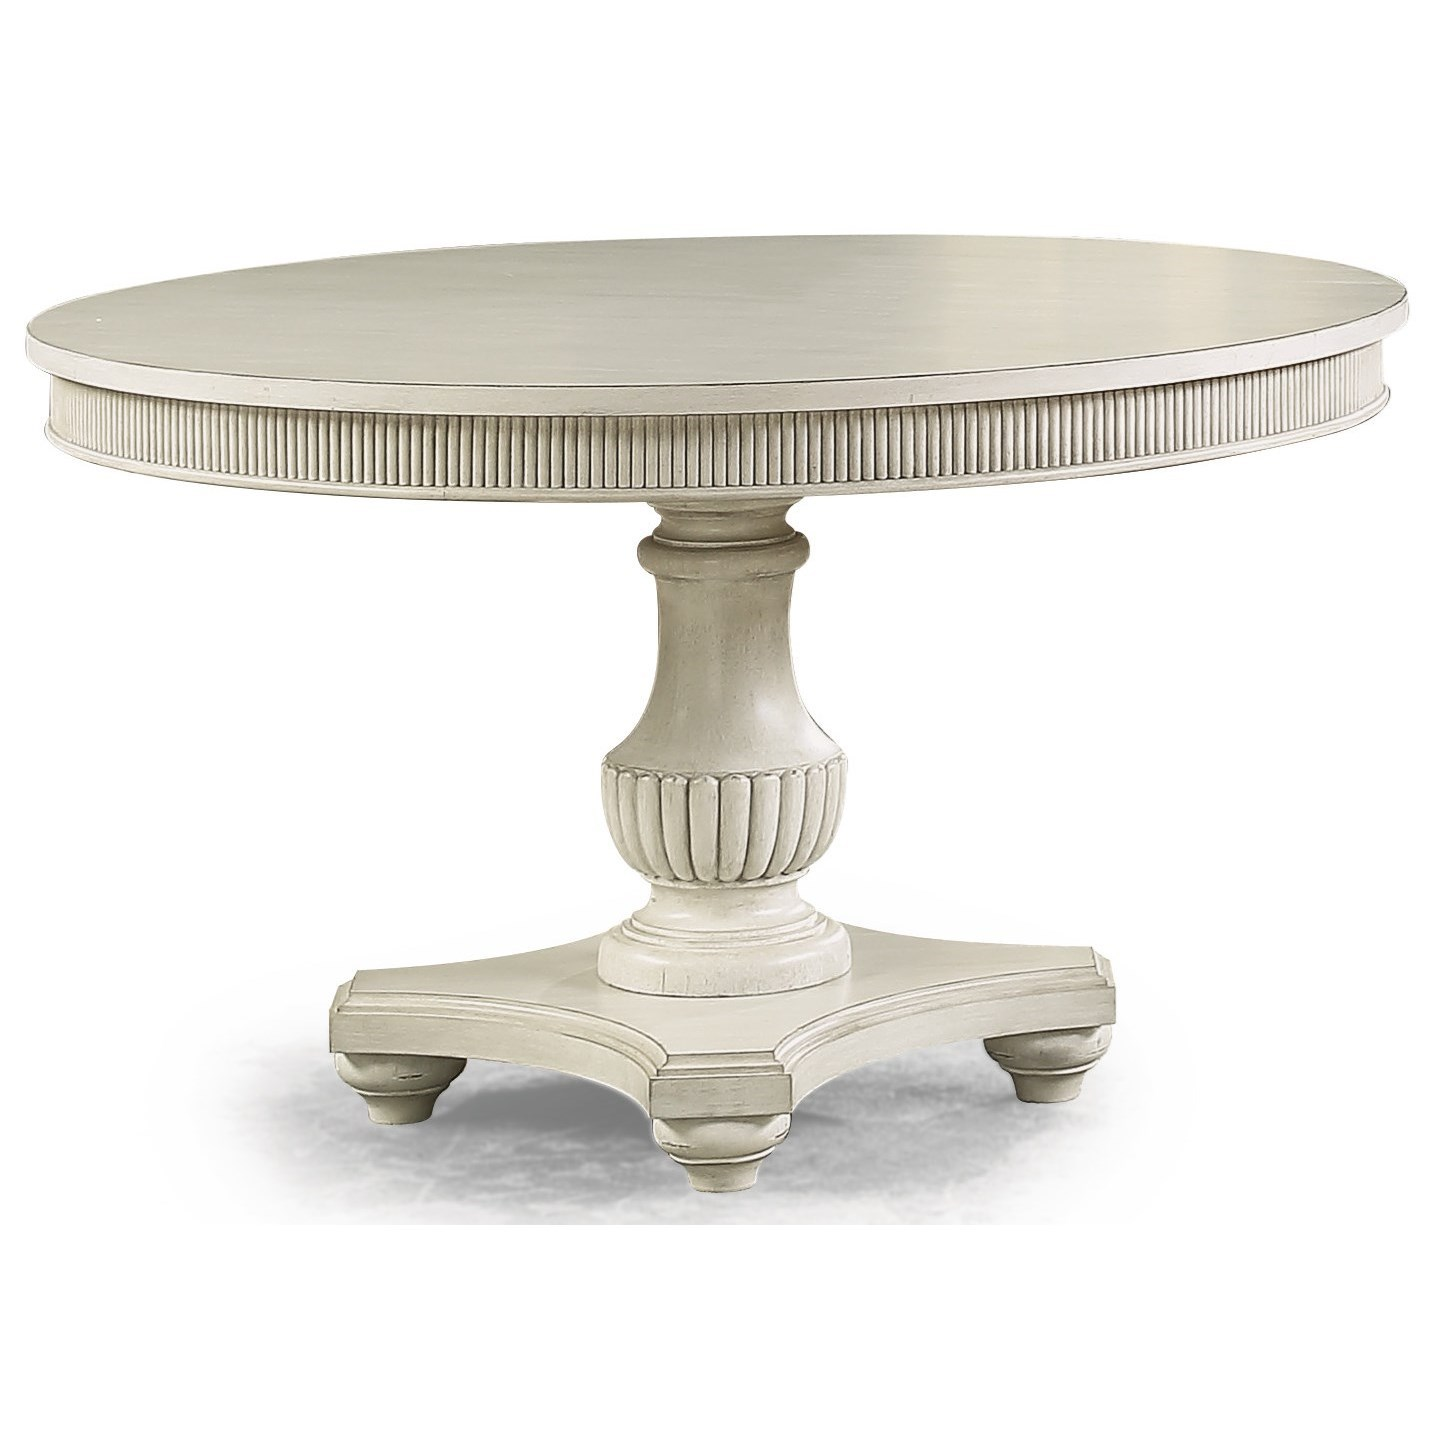 Harmony Round Pedestal Dining Table by Flexsteel Wynwood Collection at Northeast Factory Direct